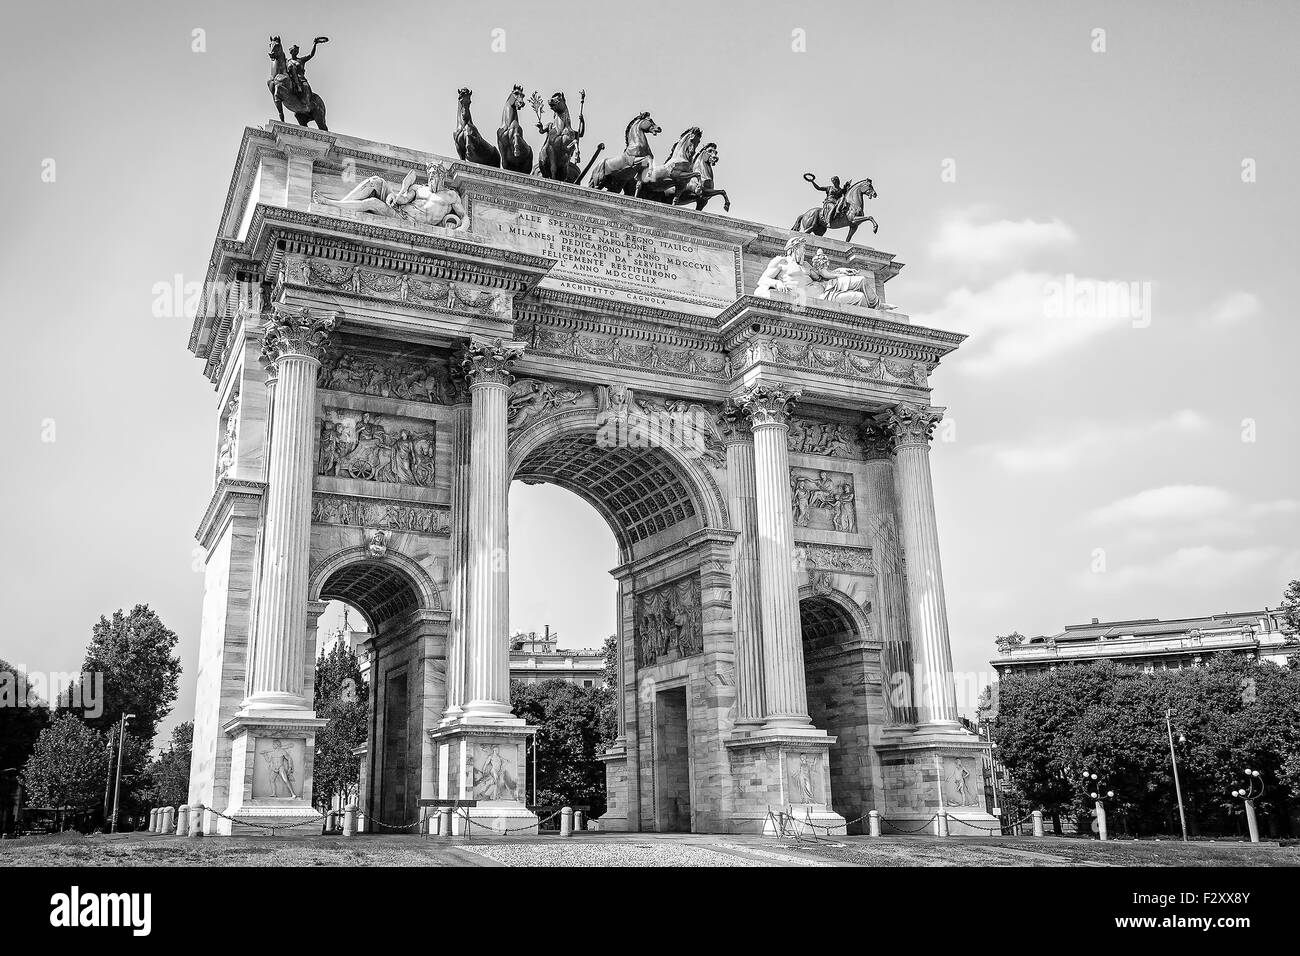 Peace Arch monument symbol triumphal entry into the city of Napoleon III and Victor Emmanuel III. Taken from below, - Stock Image